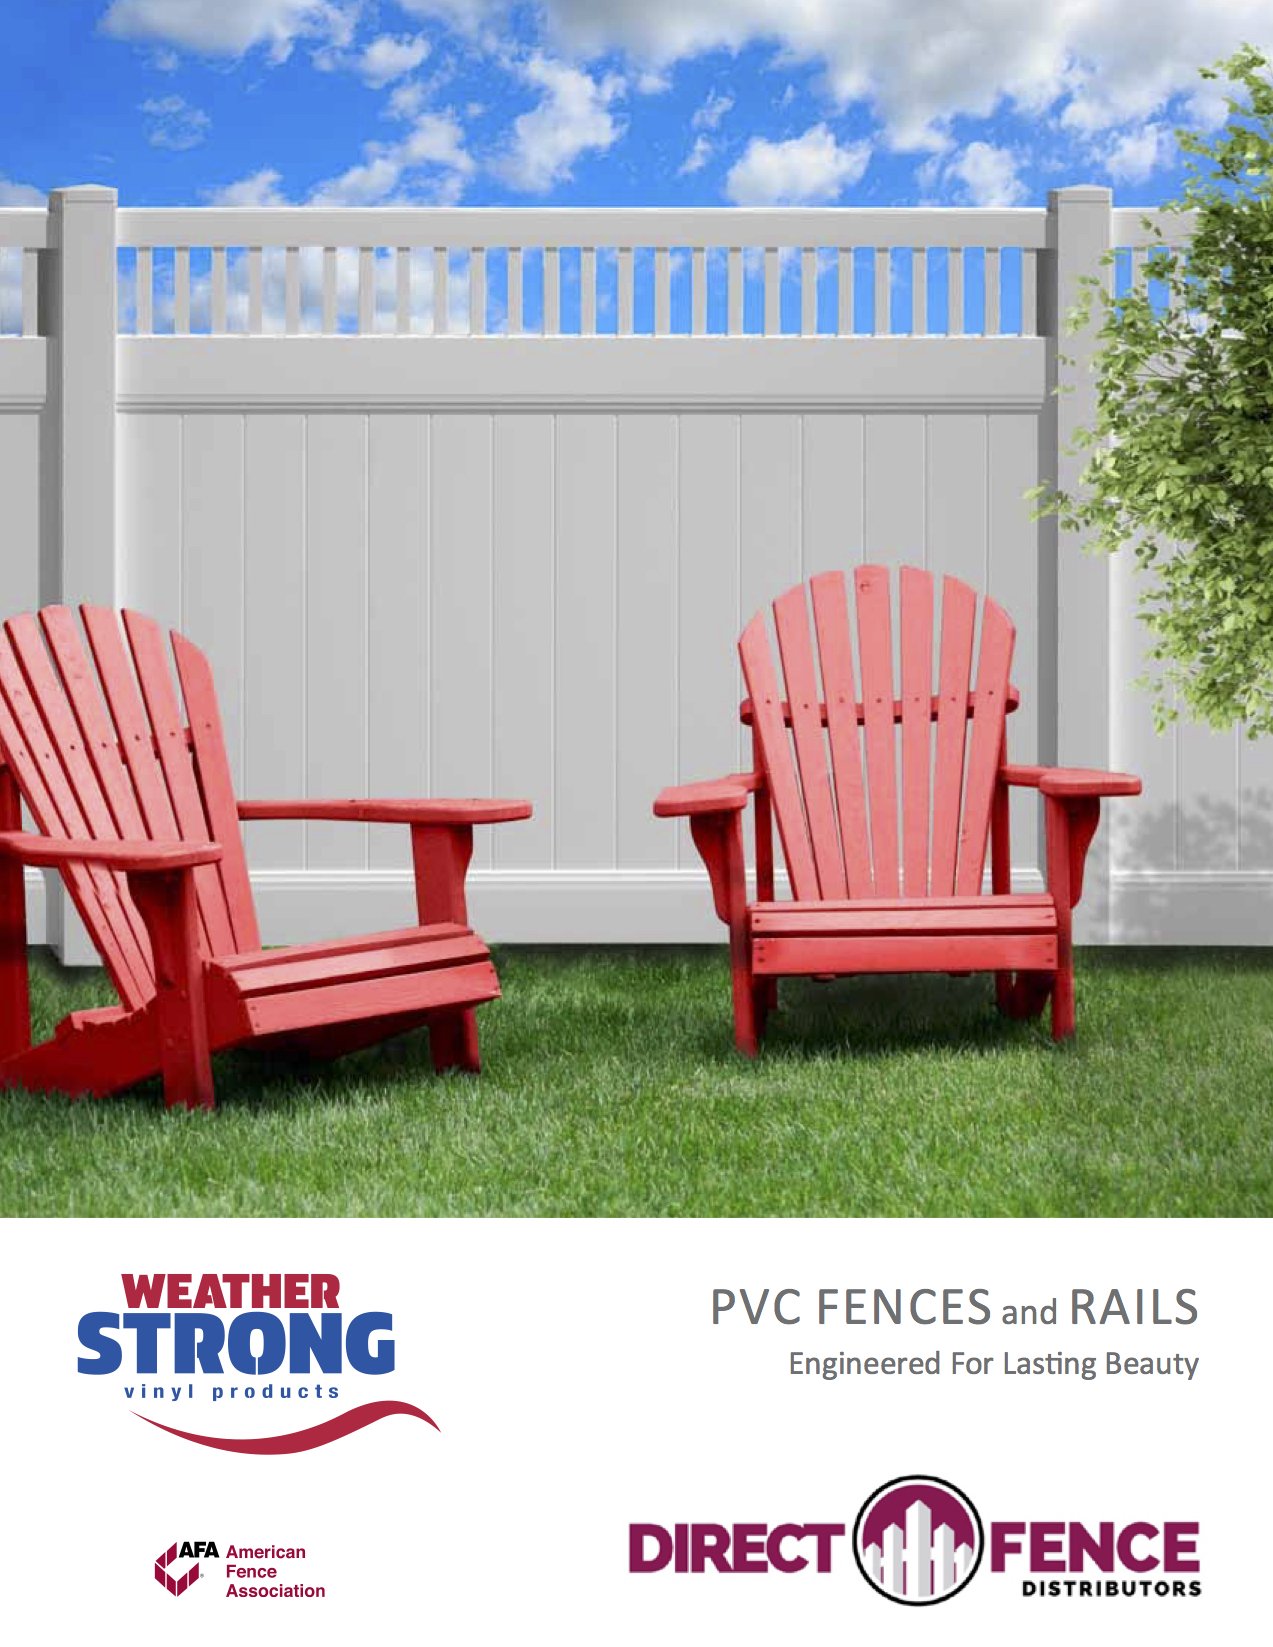 vinyl fence Willingboro NJ brochure